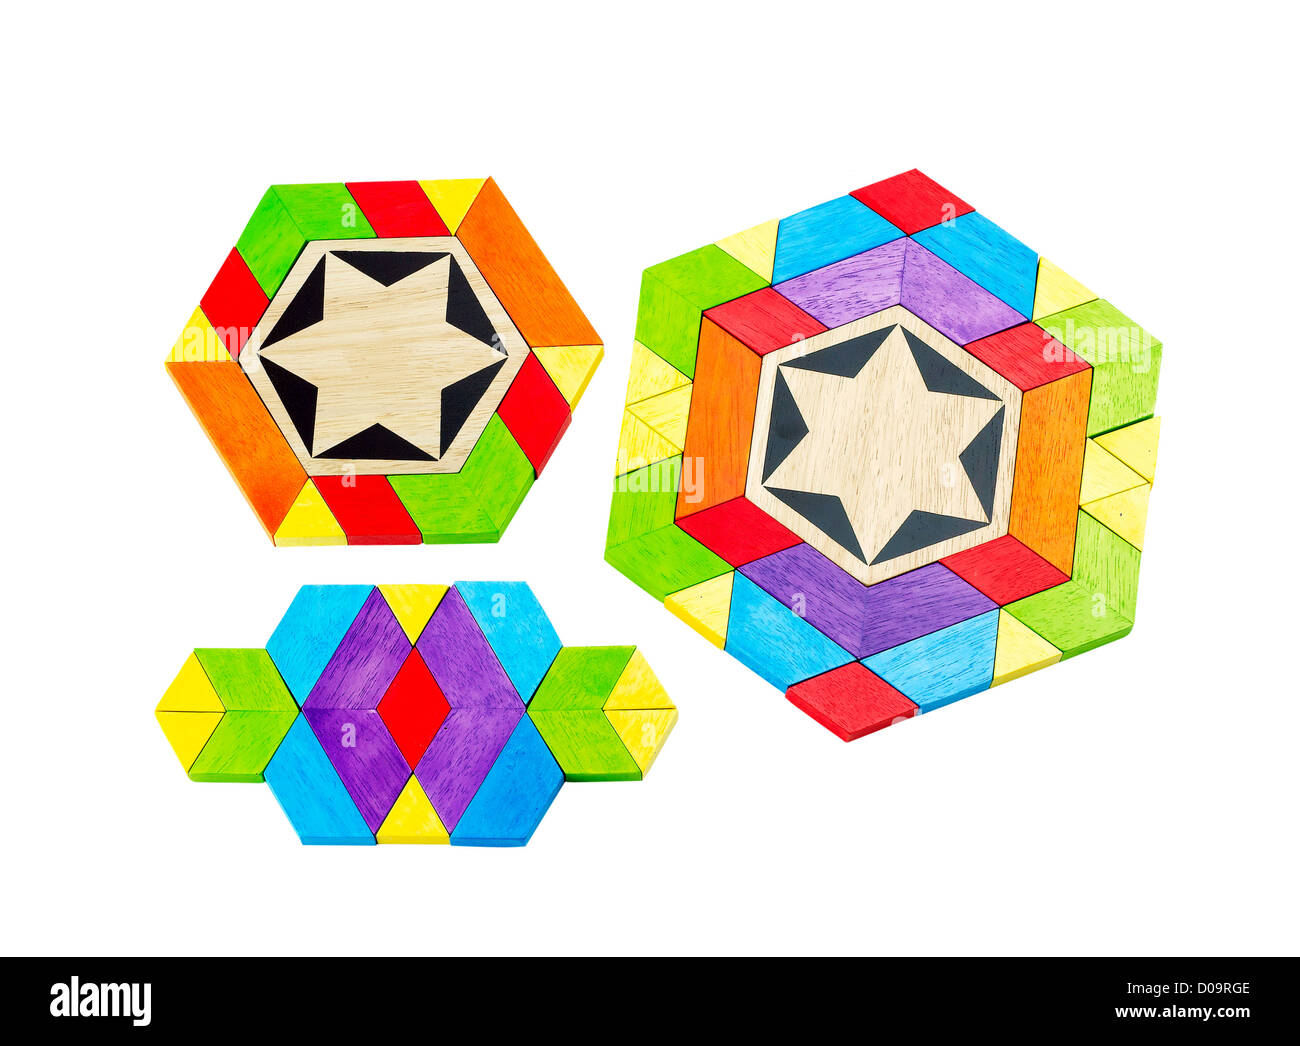 Colorful wooden toy let's children play and great there imagines - Stock Image